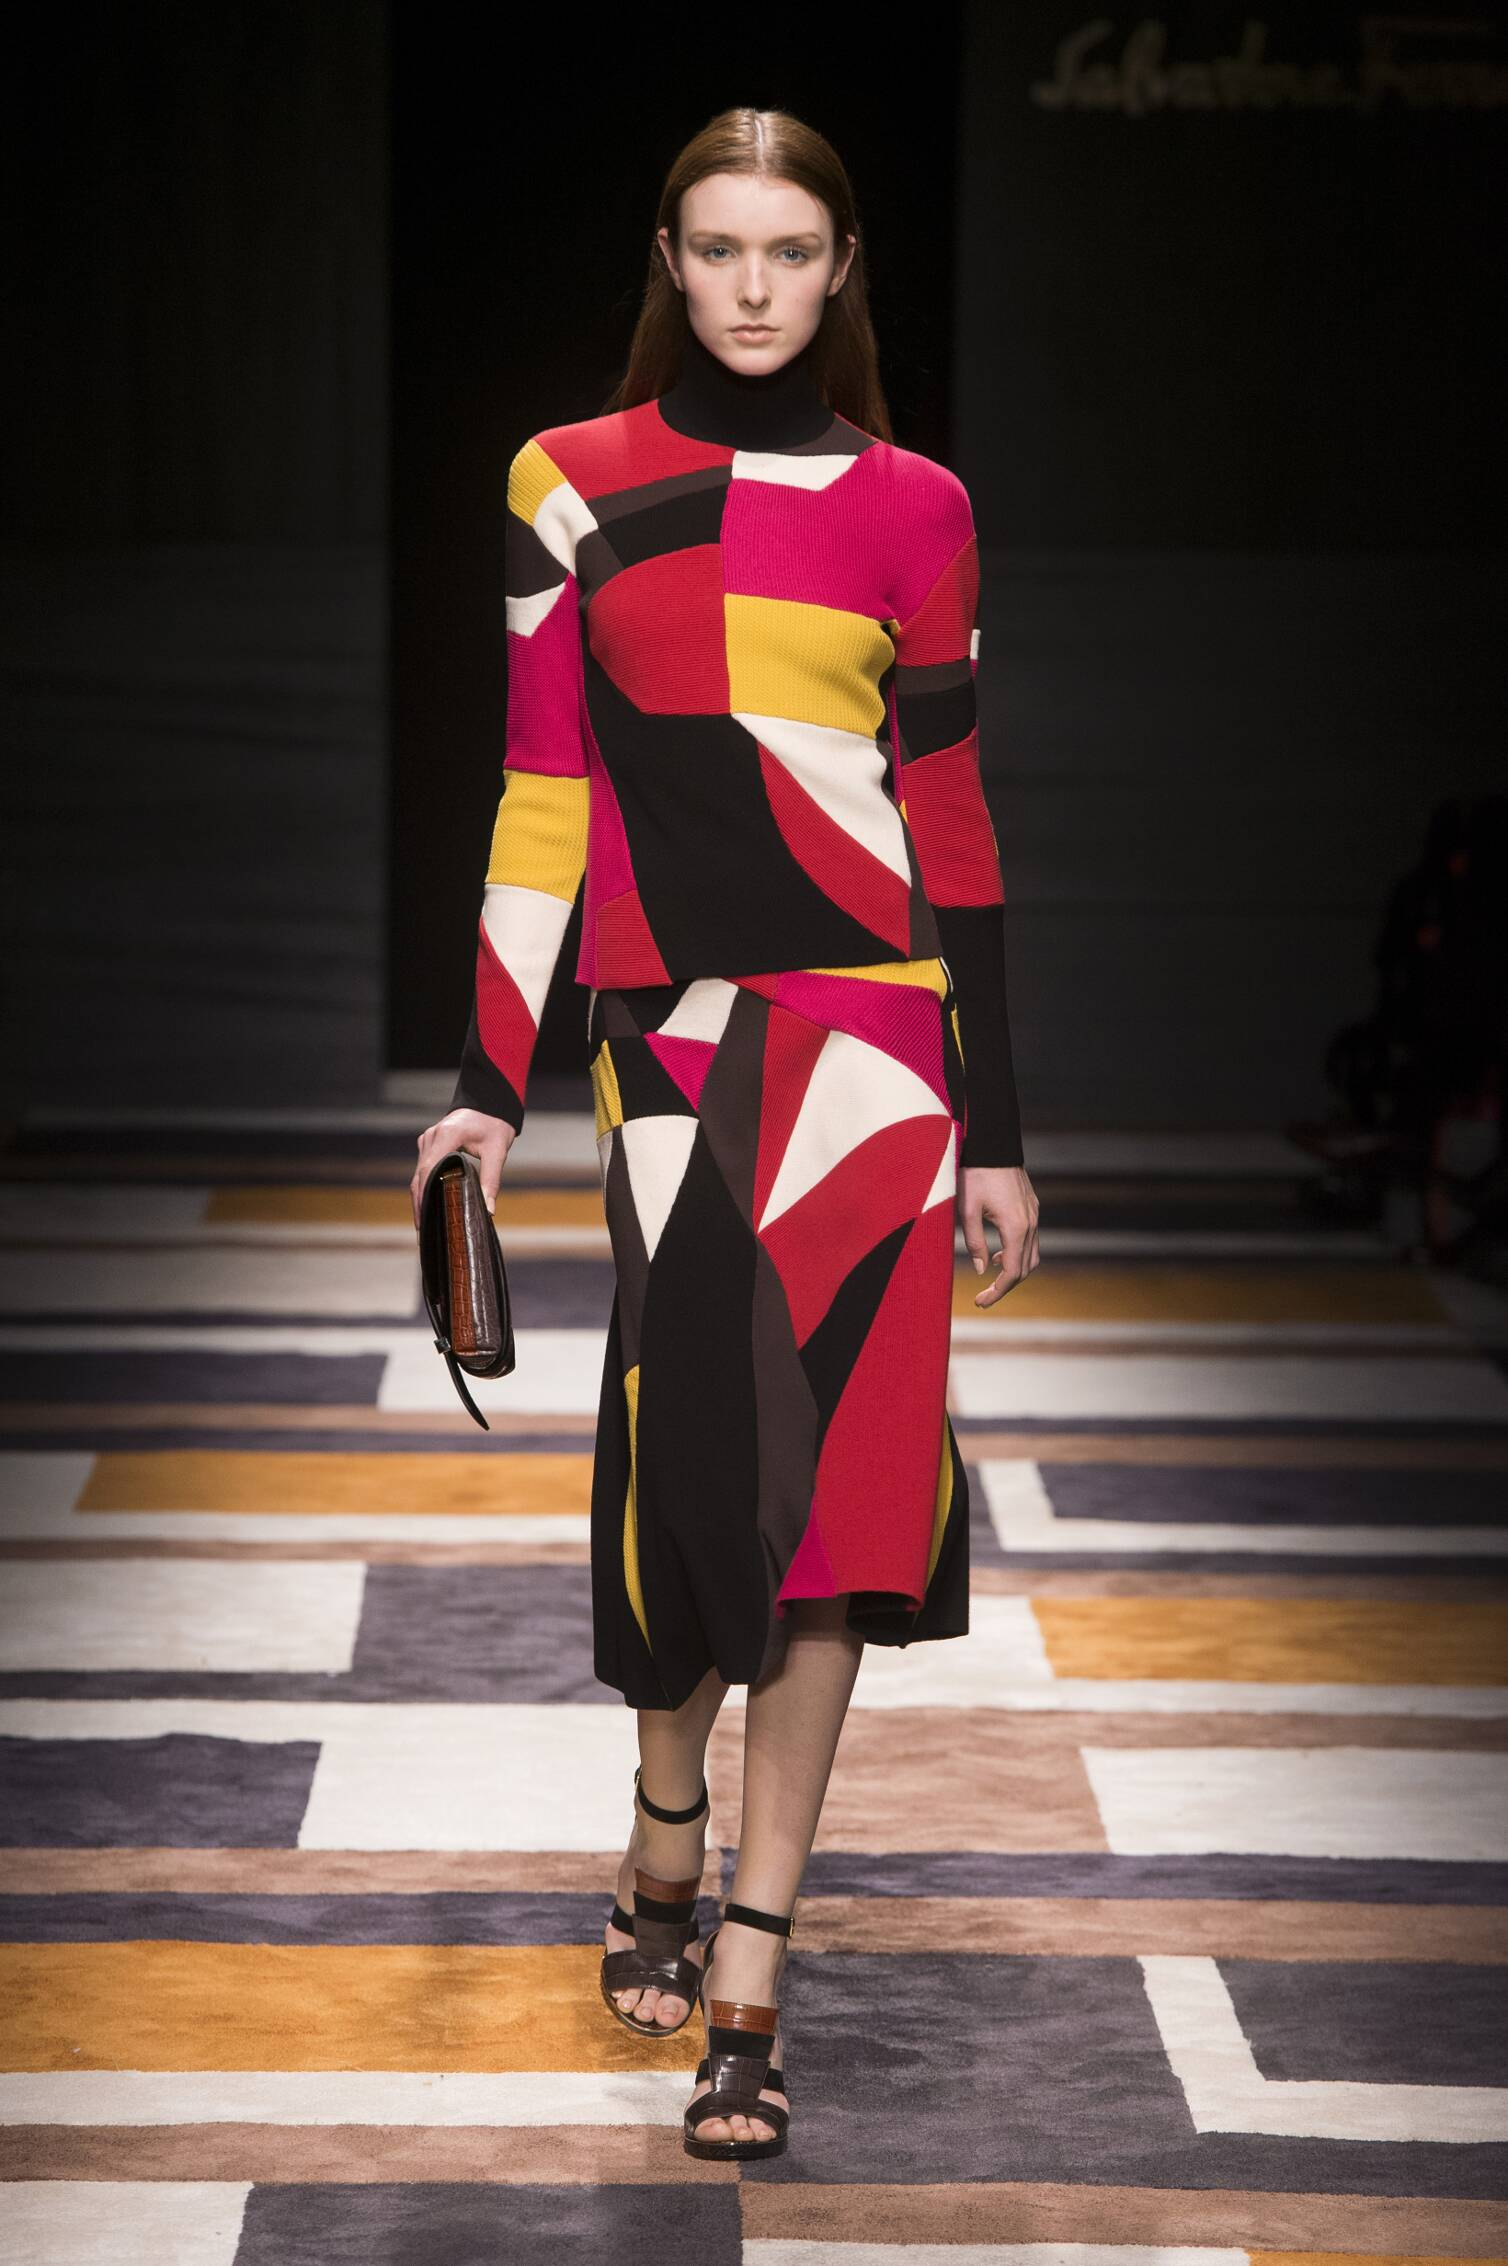 Catwalk Salvatore Ferragamo Collection Fashion Show Winter 2015